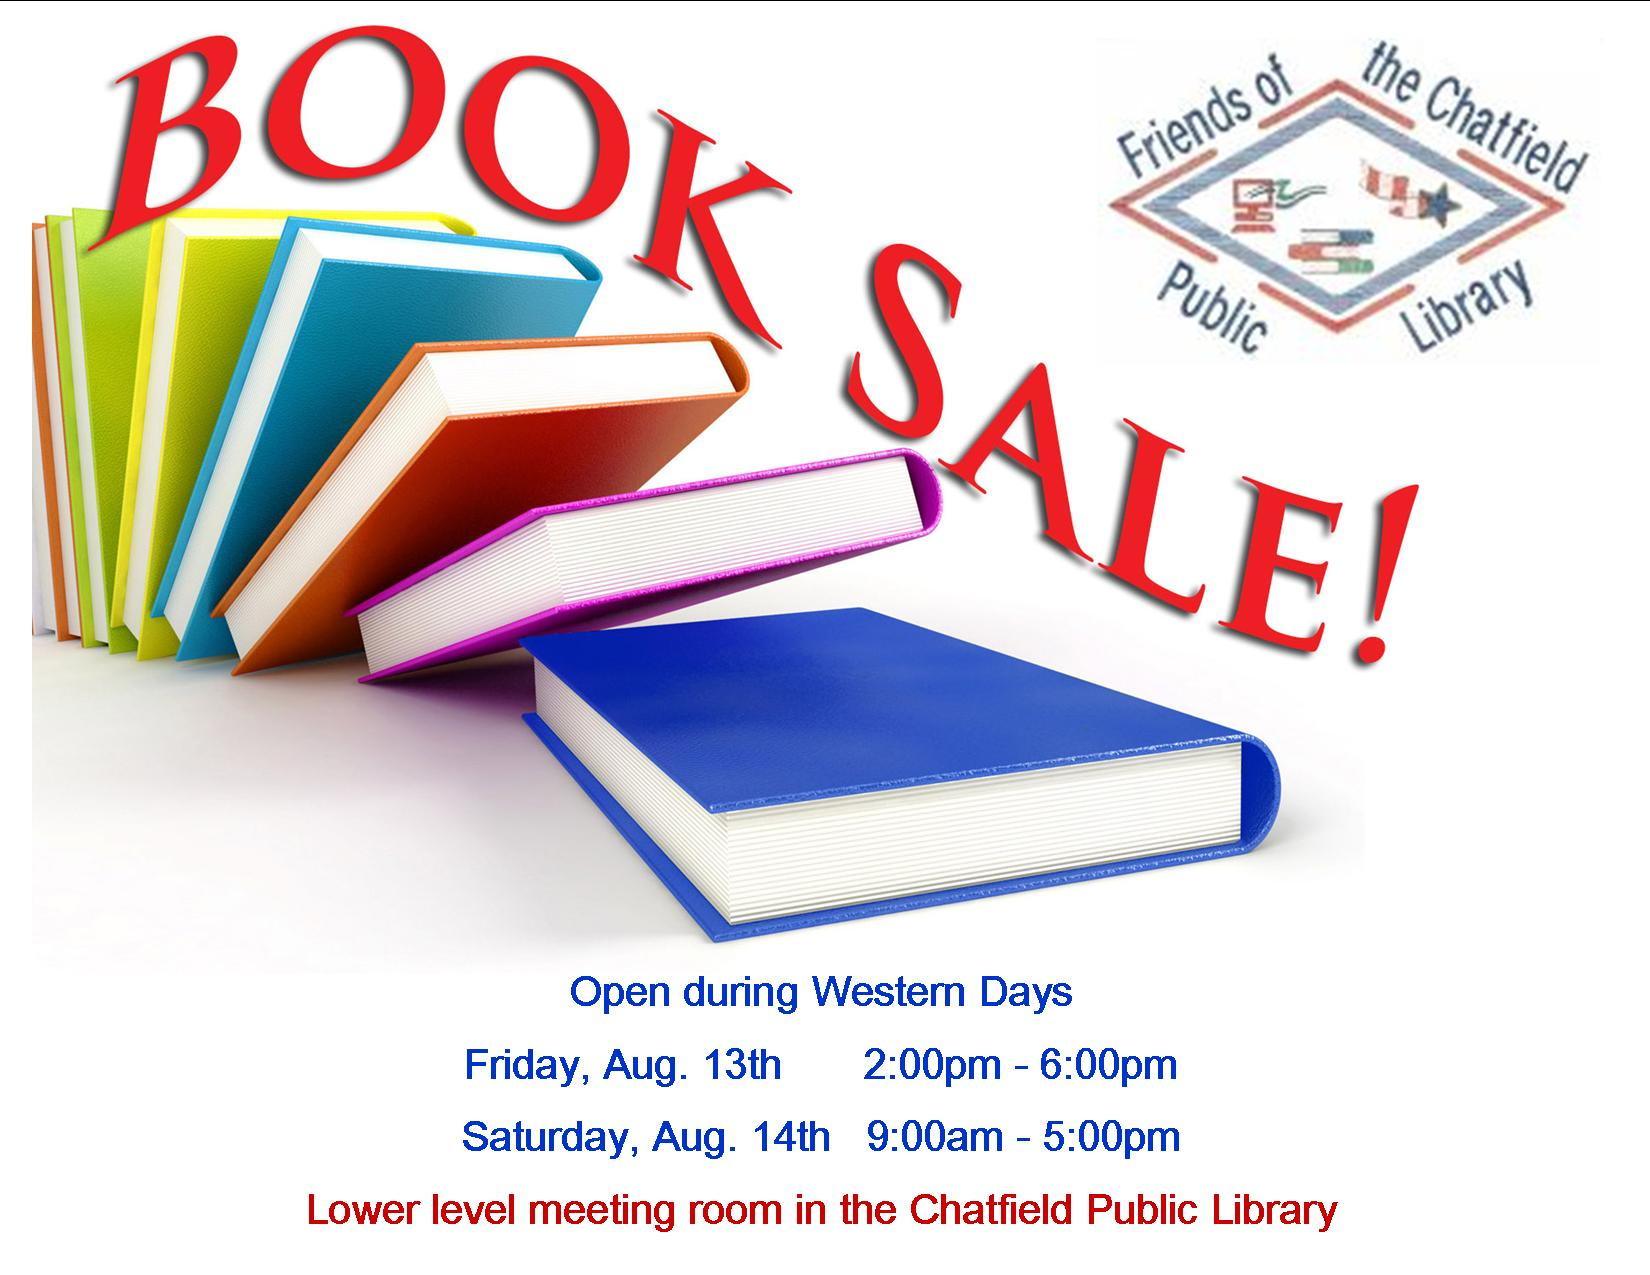 Used Book Sale, Chatfield Public Library, Friday, Aug. 13th, 2:00pm - 6:00pm Saturday, Aug. 14th, 9:00am - 5:00pm